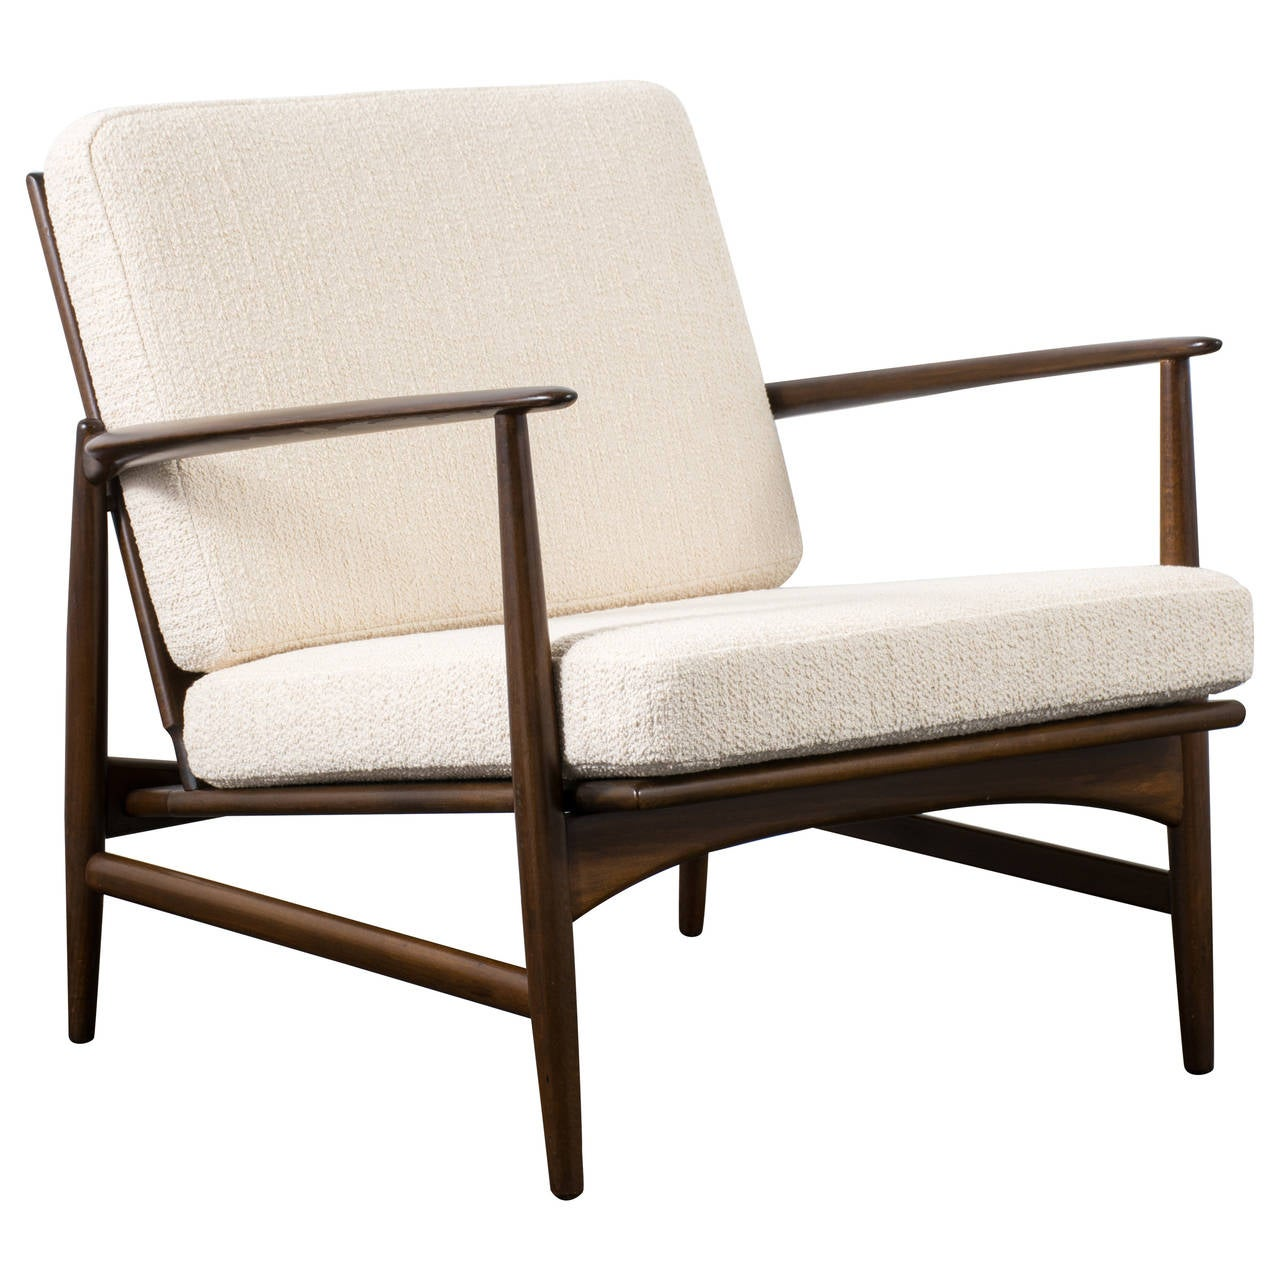 danish modern lounge chair by kofod larsen for selig at